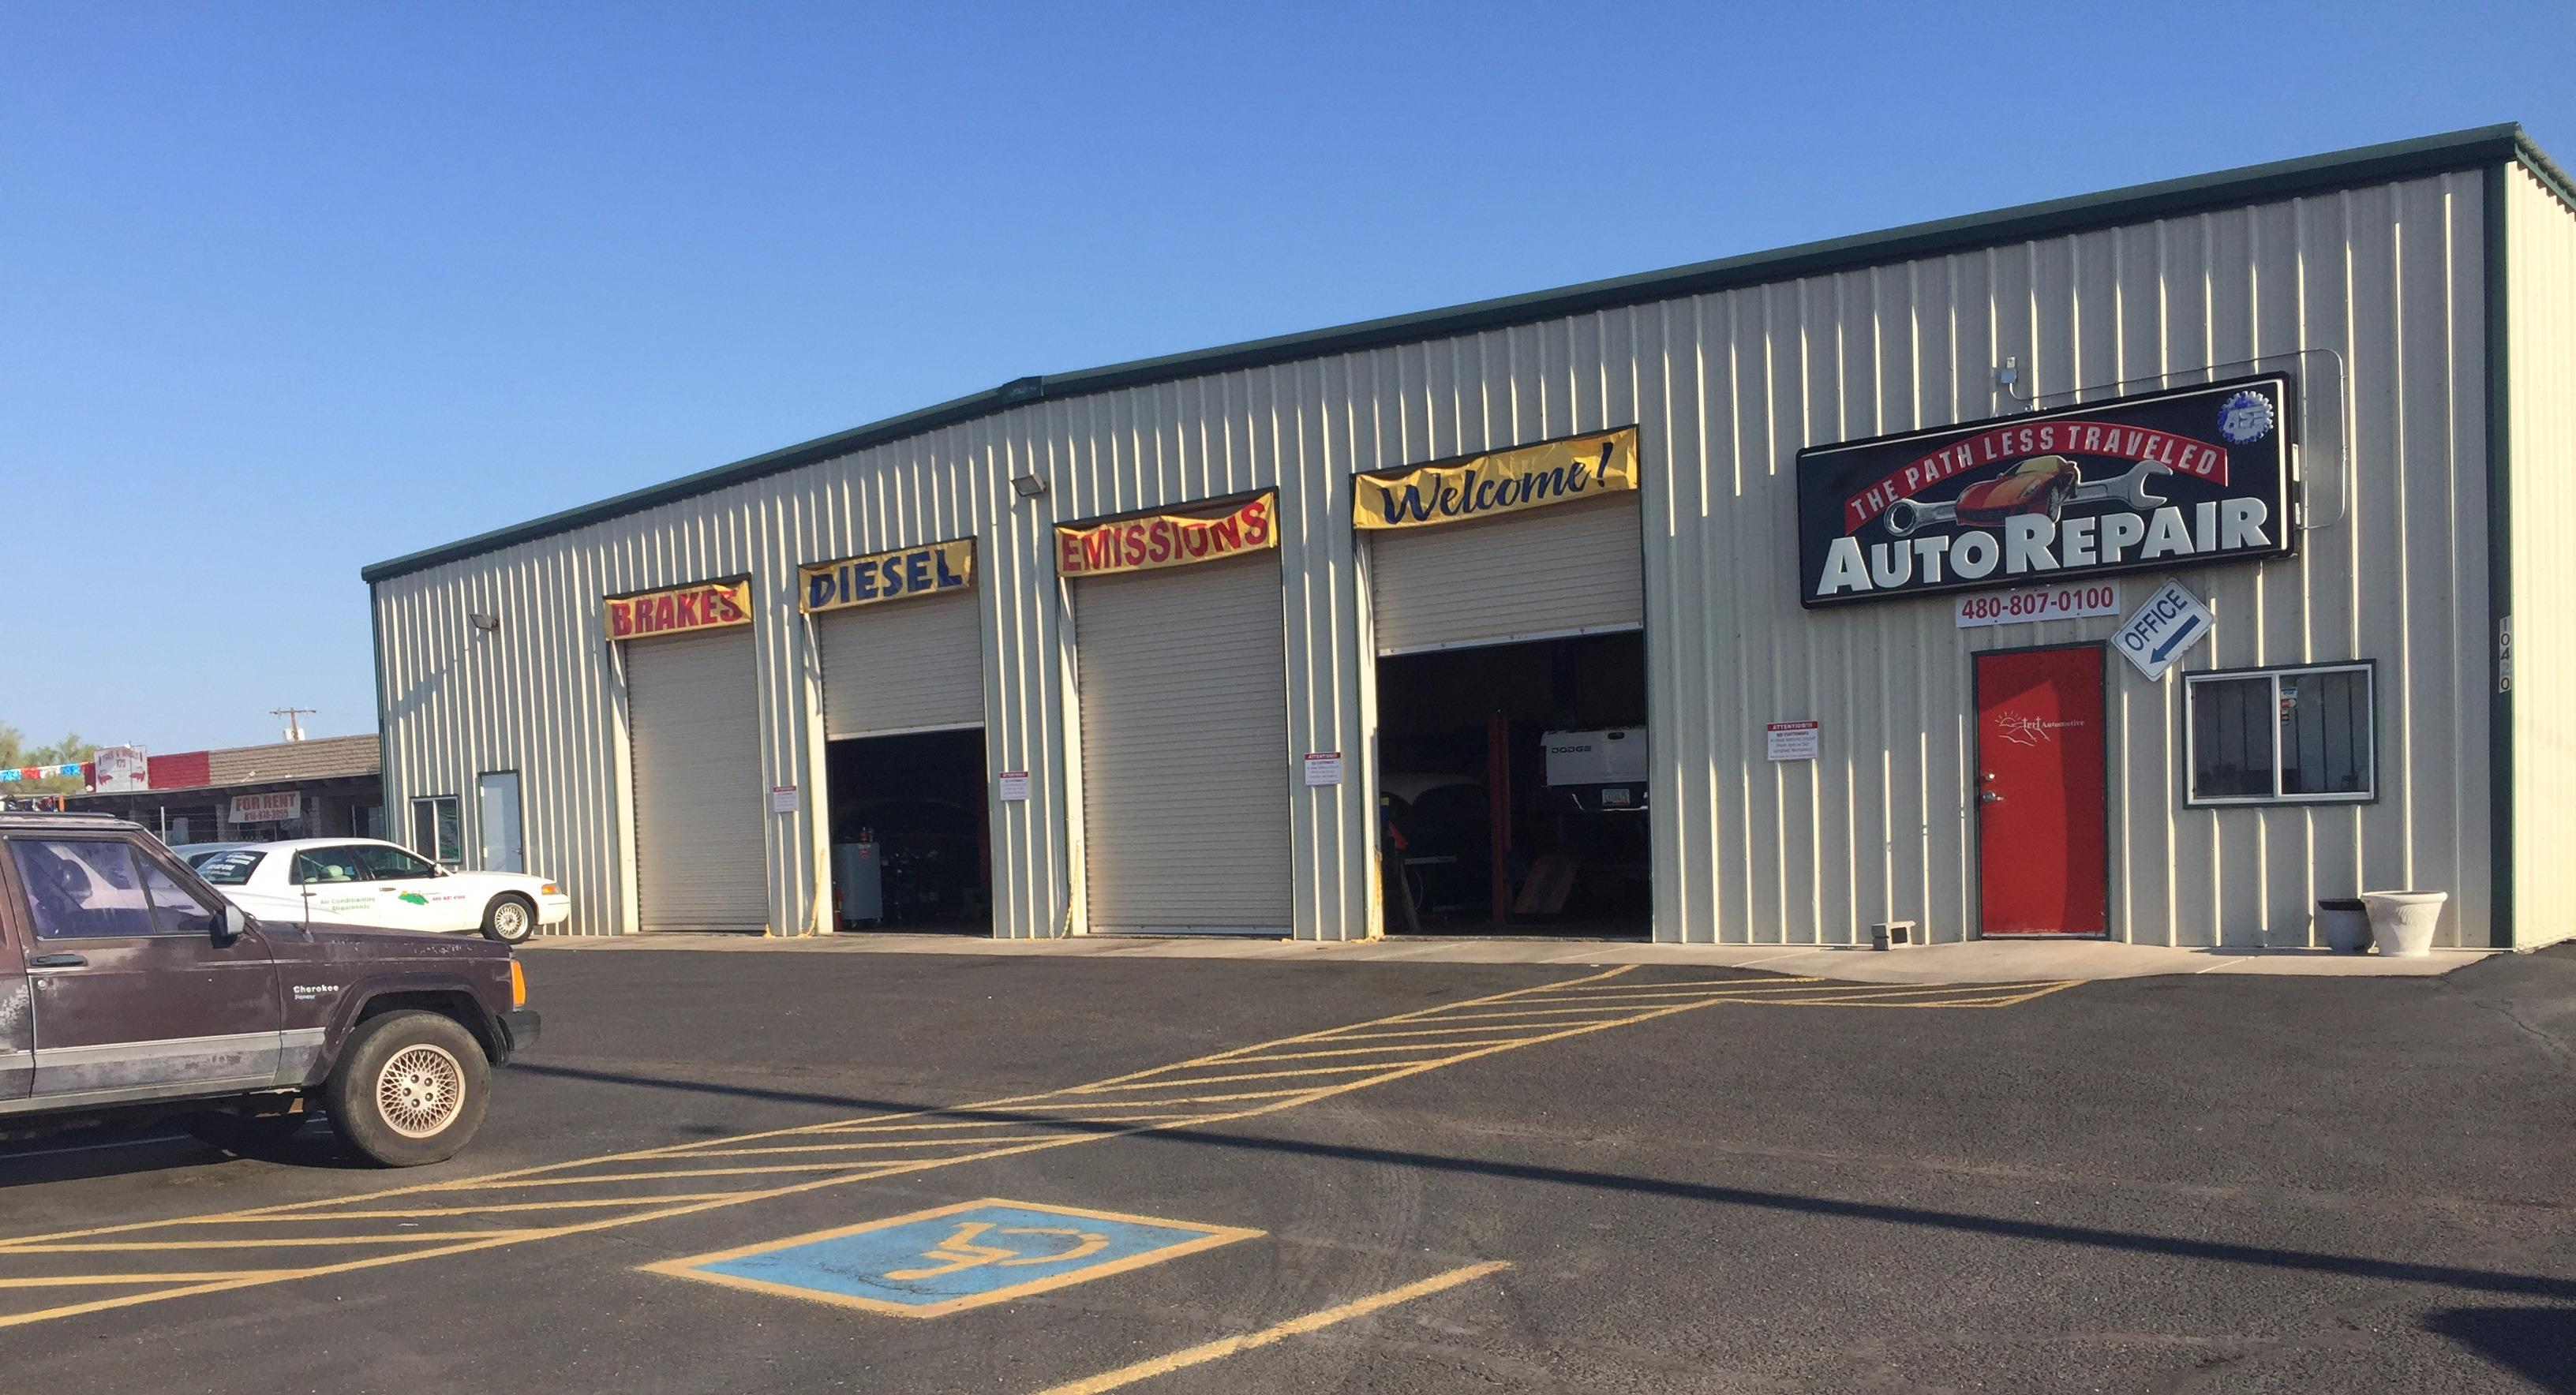 The Path Less Traveled Automotive in Apache Junction, AZ. Count on our automotive repair technicians to keep your car, truck, suv, or van on the roads longer and safer.